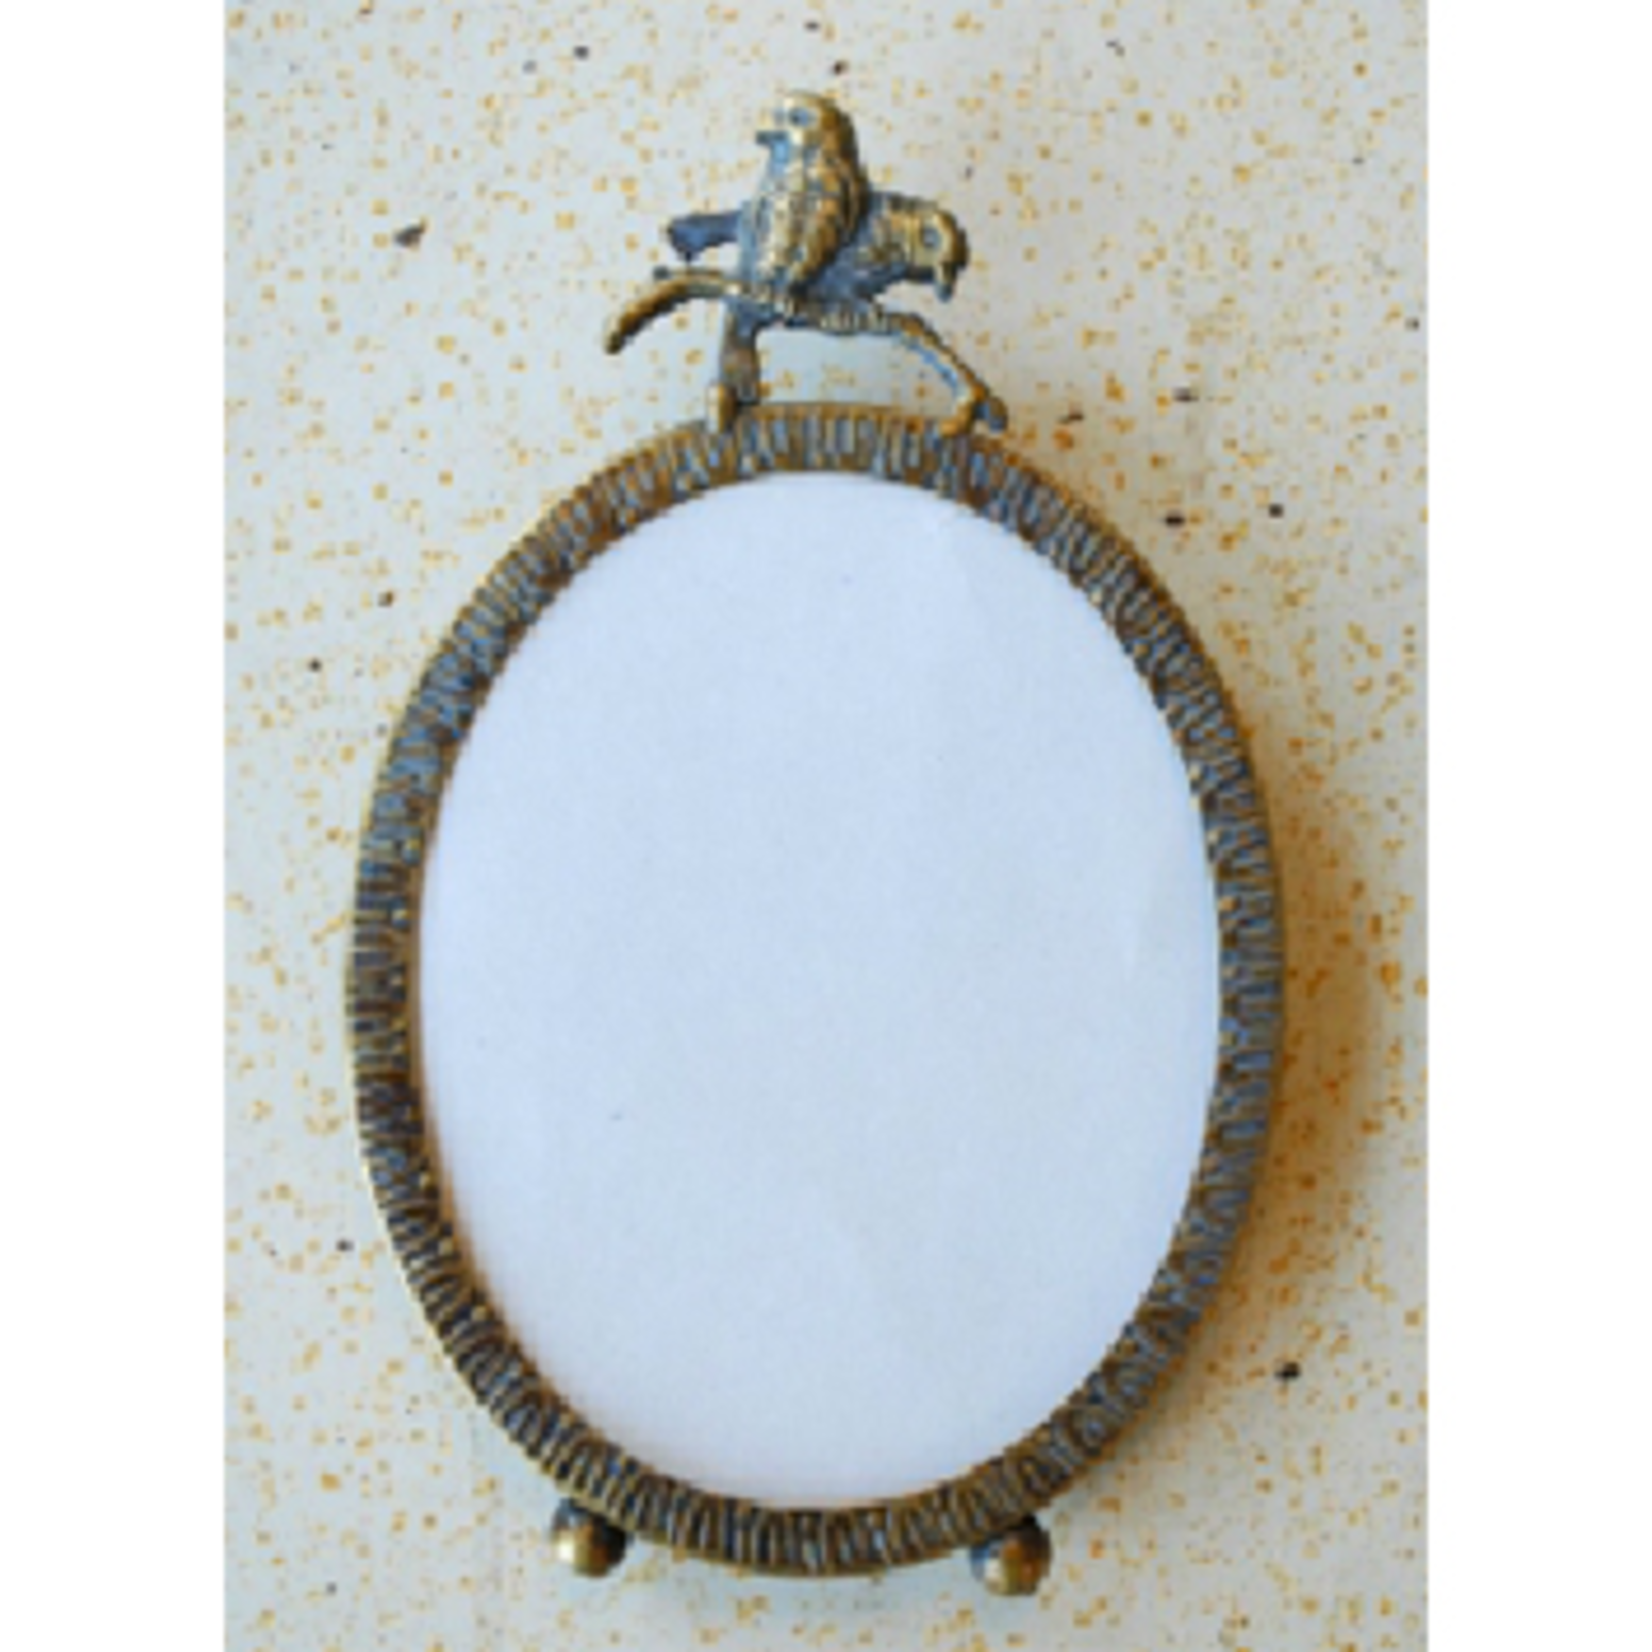 CHEHOMA Picture frame oval with 2 birds